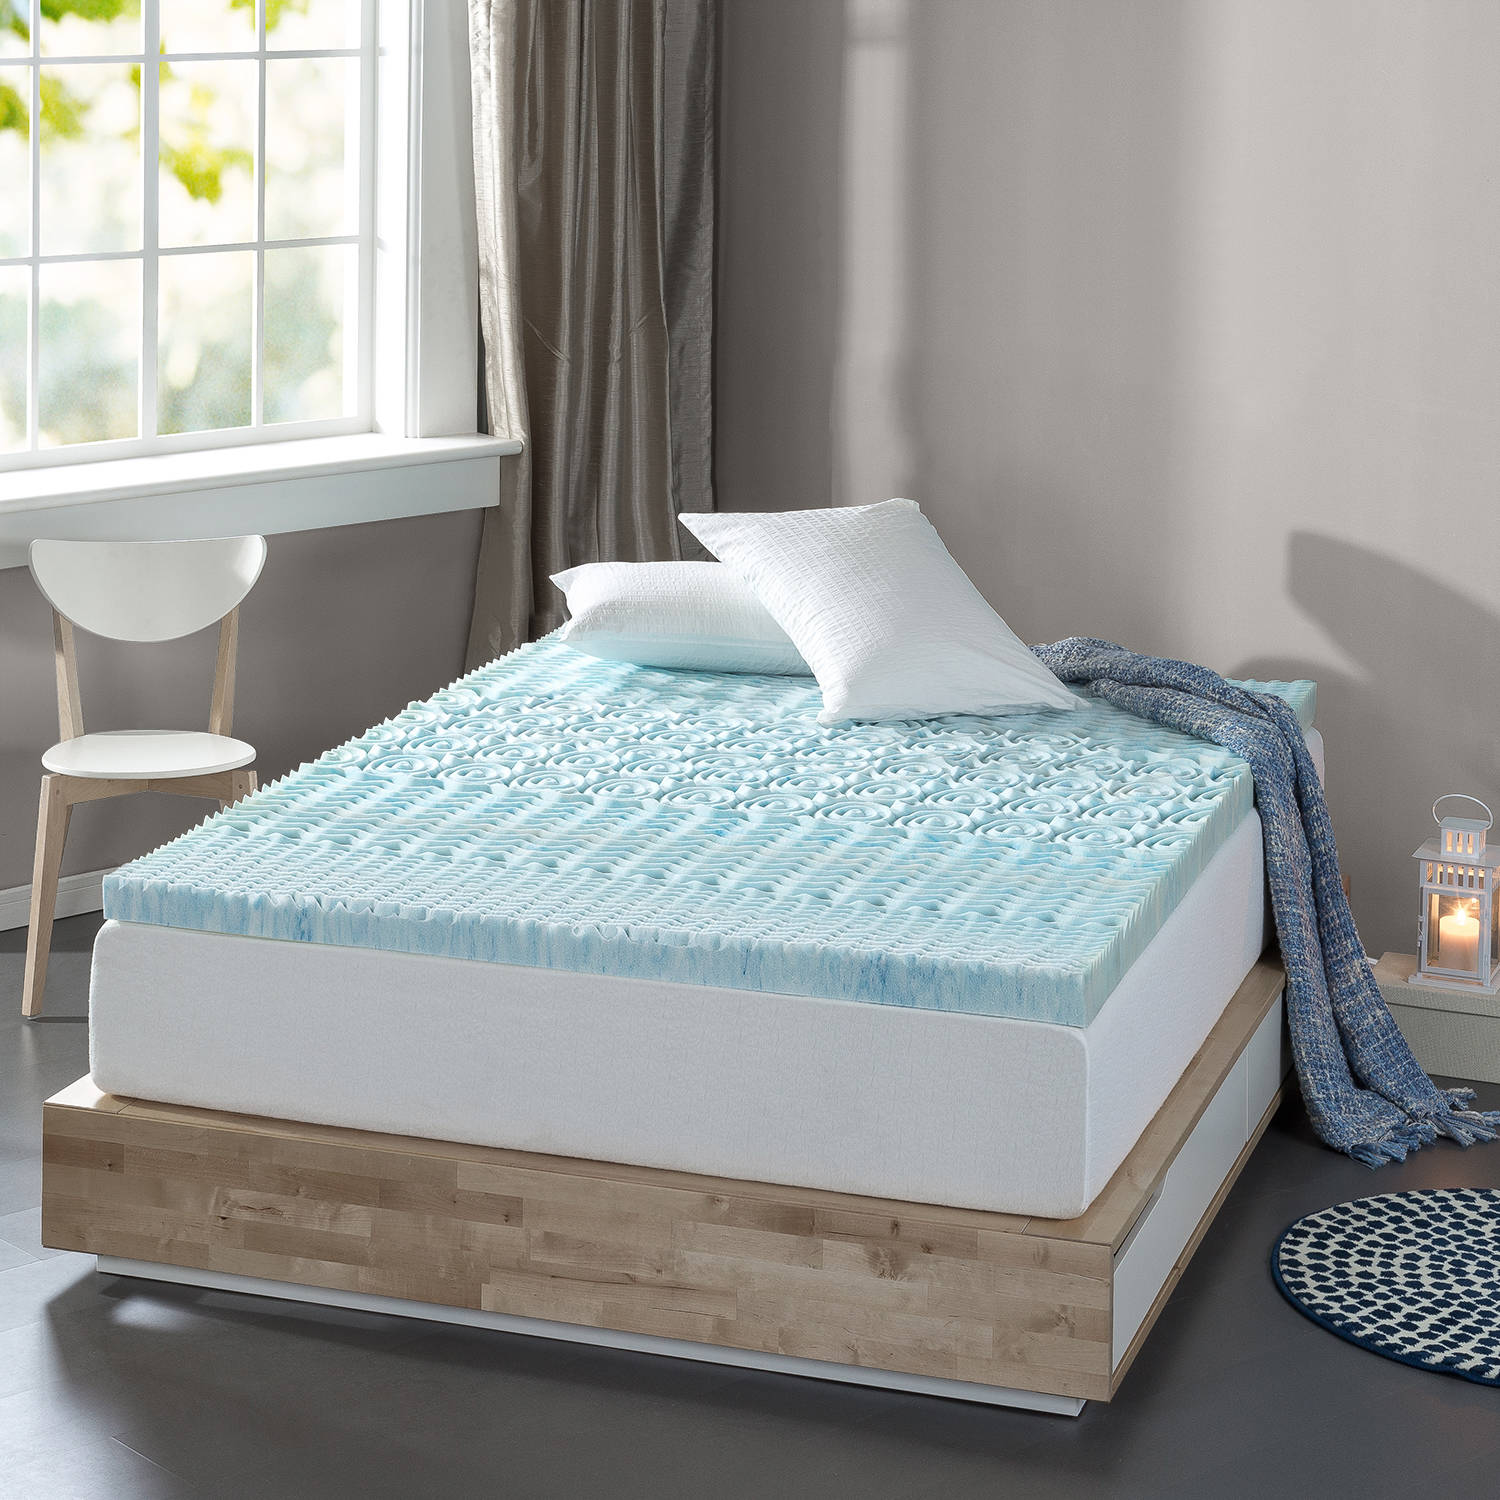 "Spa Sensations by Zinus Zoned Fusion Gel Memory Foam 3"" Mattress Topper"